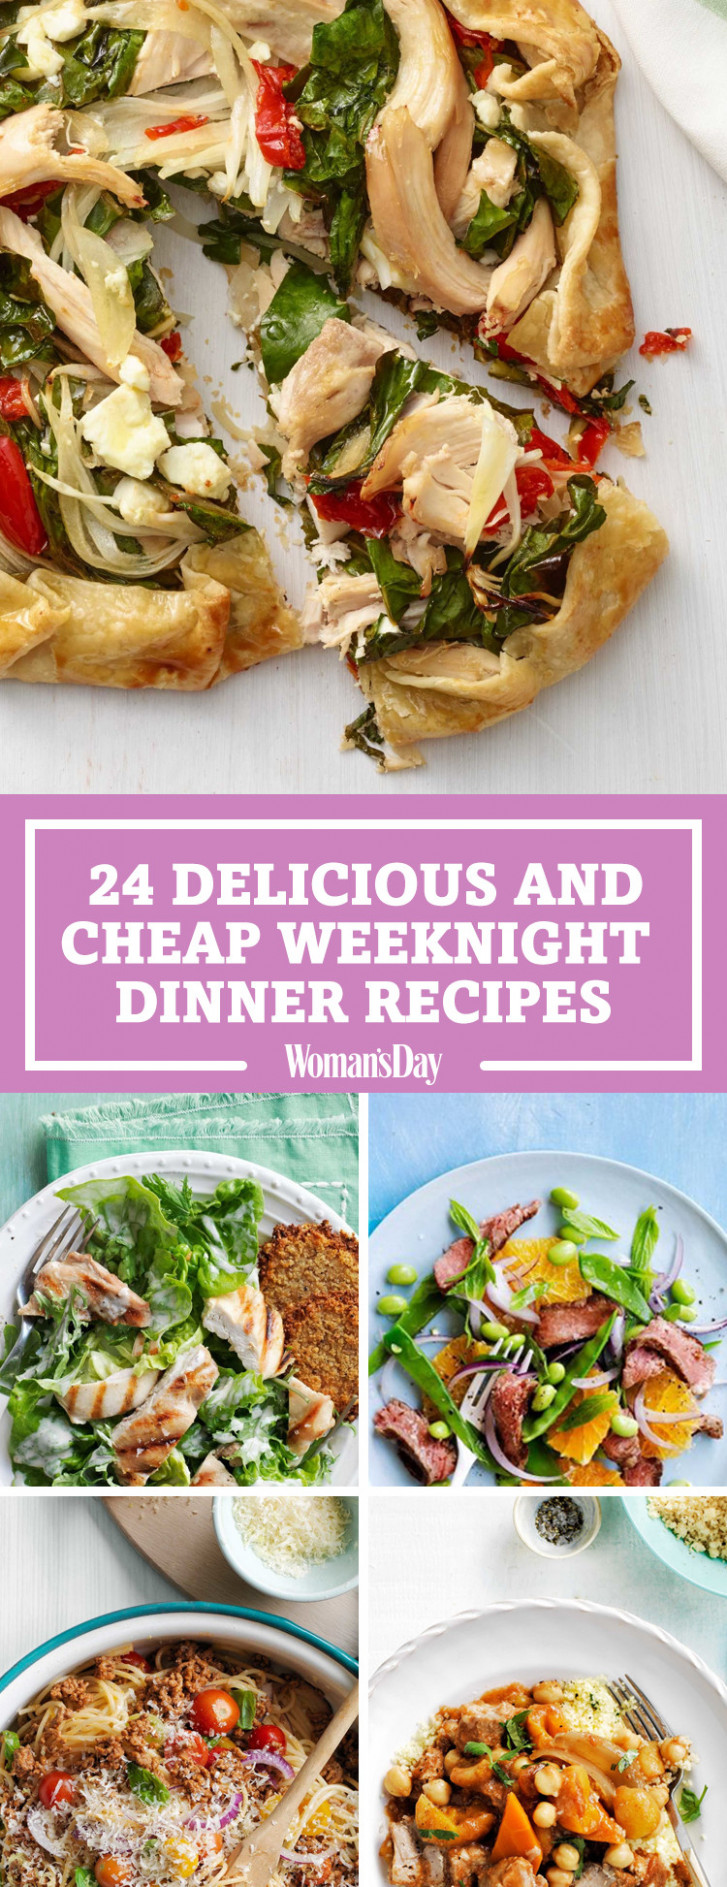 95+ Cheap Dinner Ideas – Easy Recipes for Inexpensive Meals